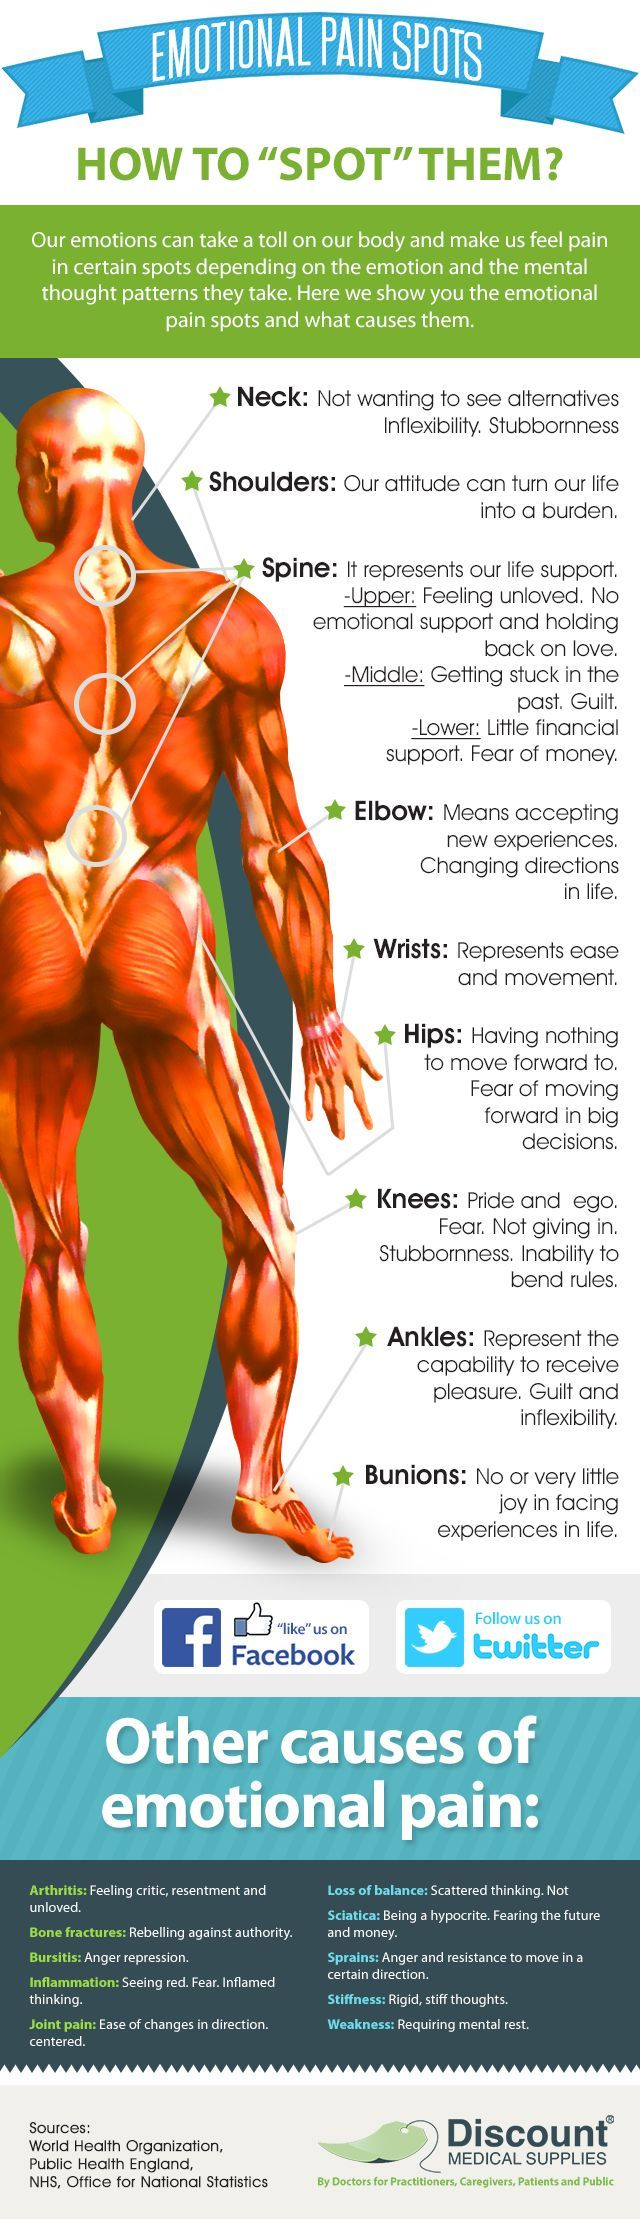 Emotional Pain Areas On The Body And How To Spot Them